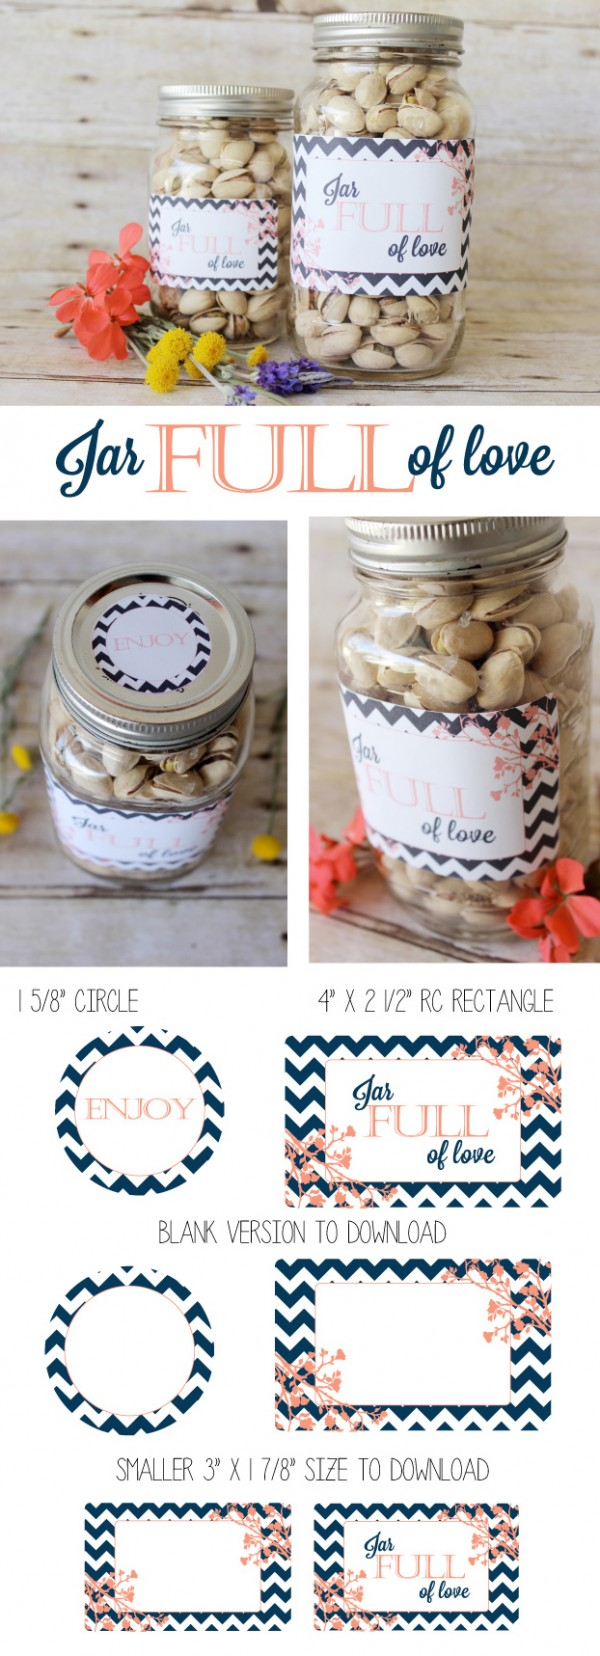 Jar-Full-Of-Love-Label-for-BLOG